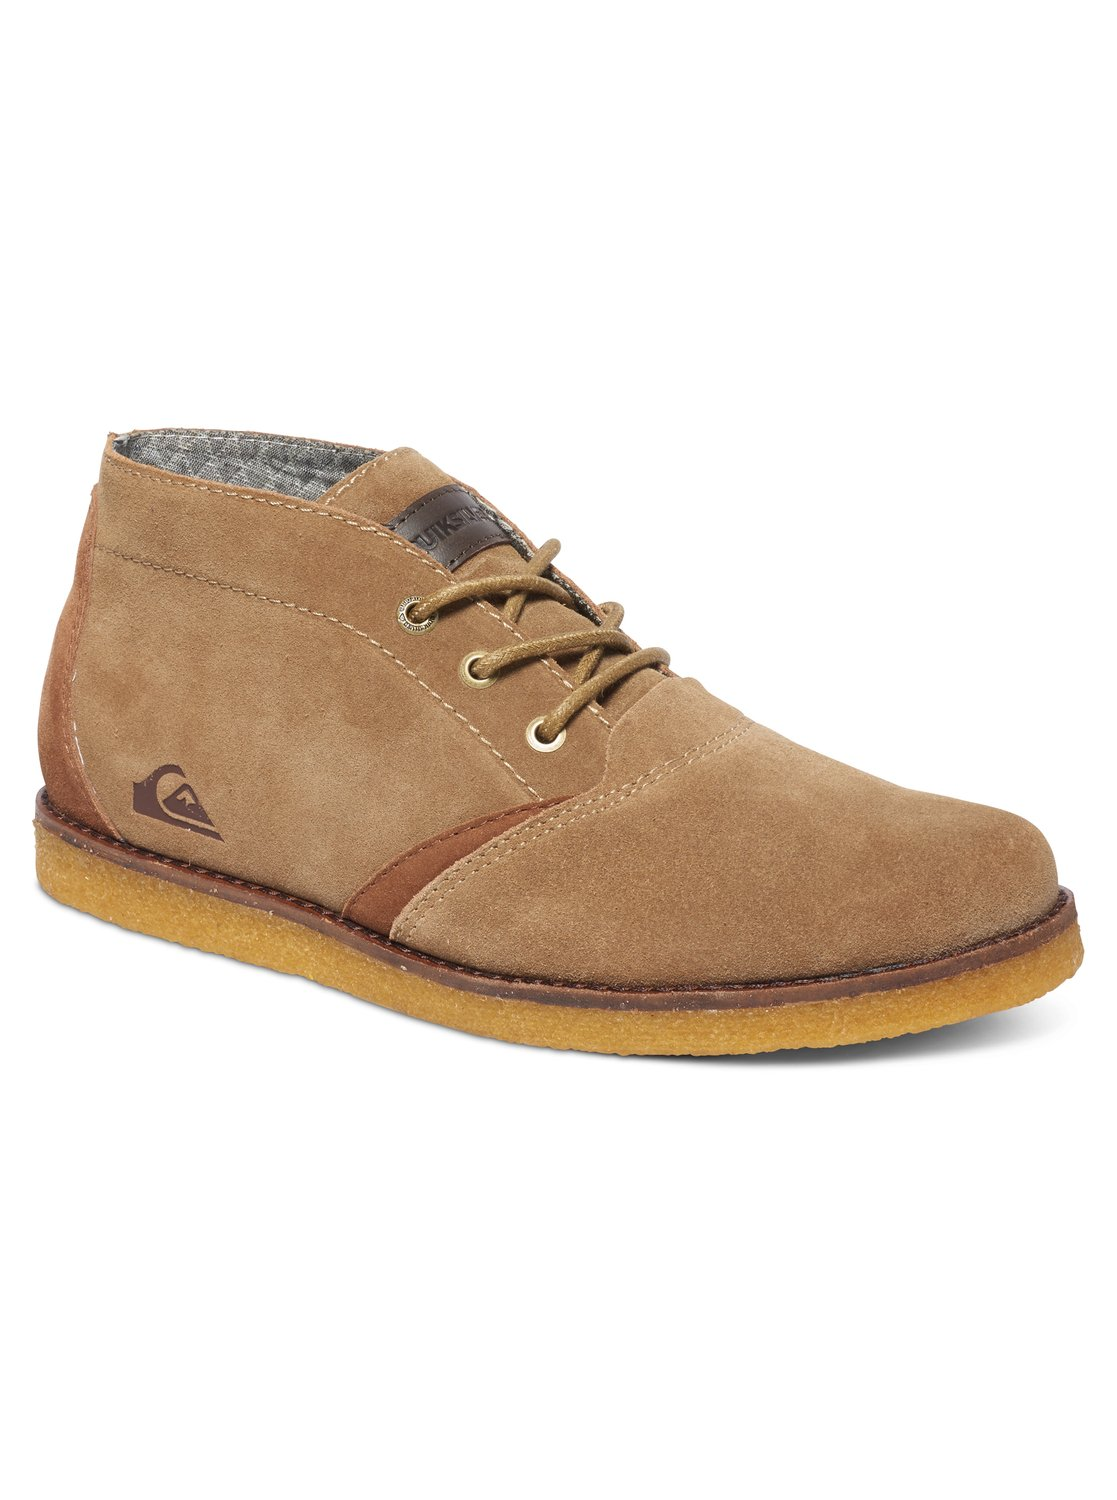 quiksilver harpoon chukka boots desert boots en cuir. Black Bedroom Furniture Sets. Home Design Ideas